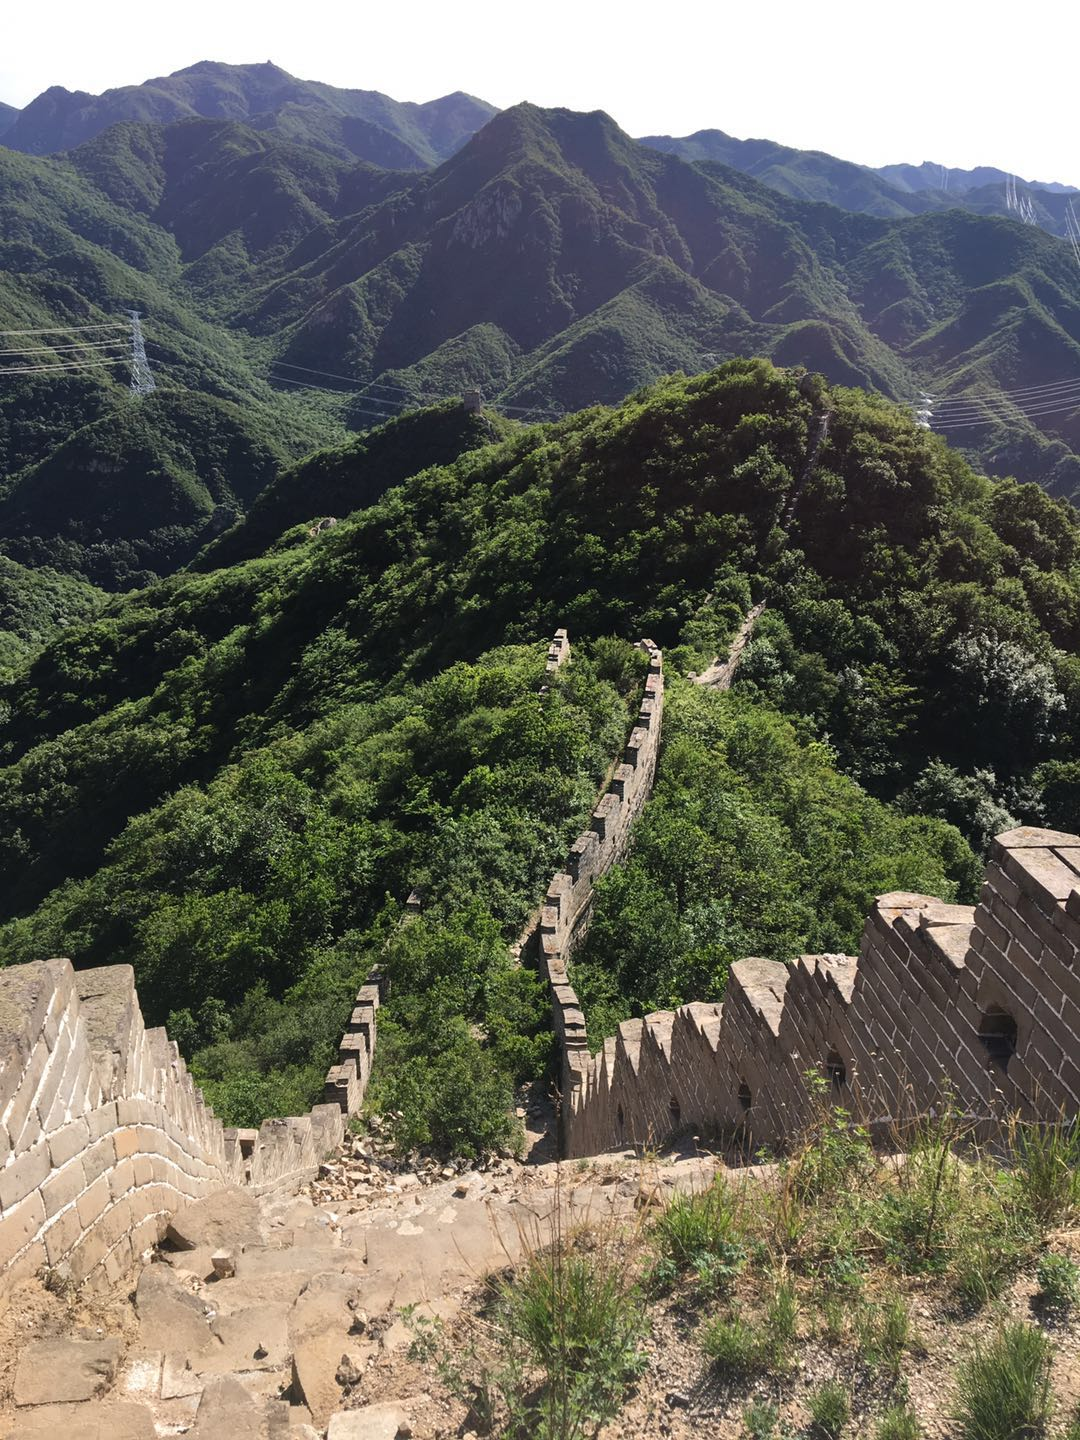 Nature begins to take over the Great Wall